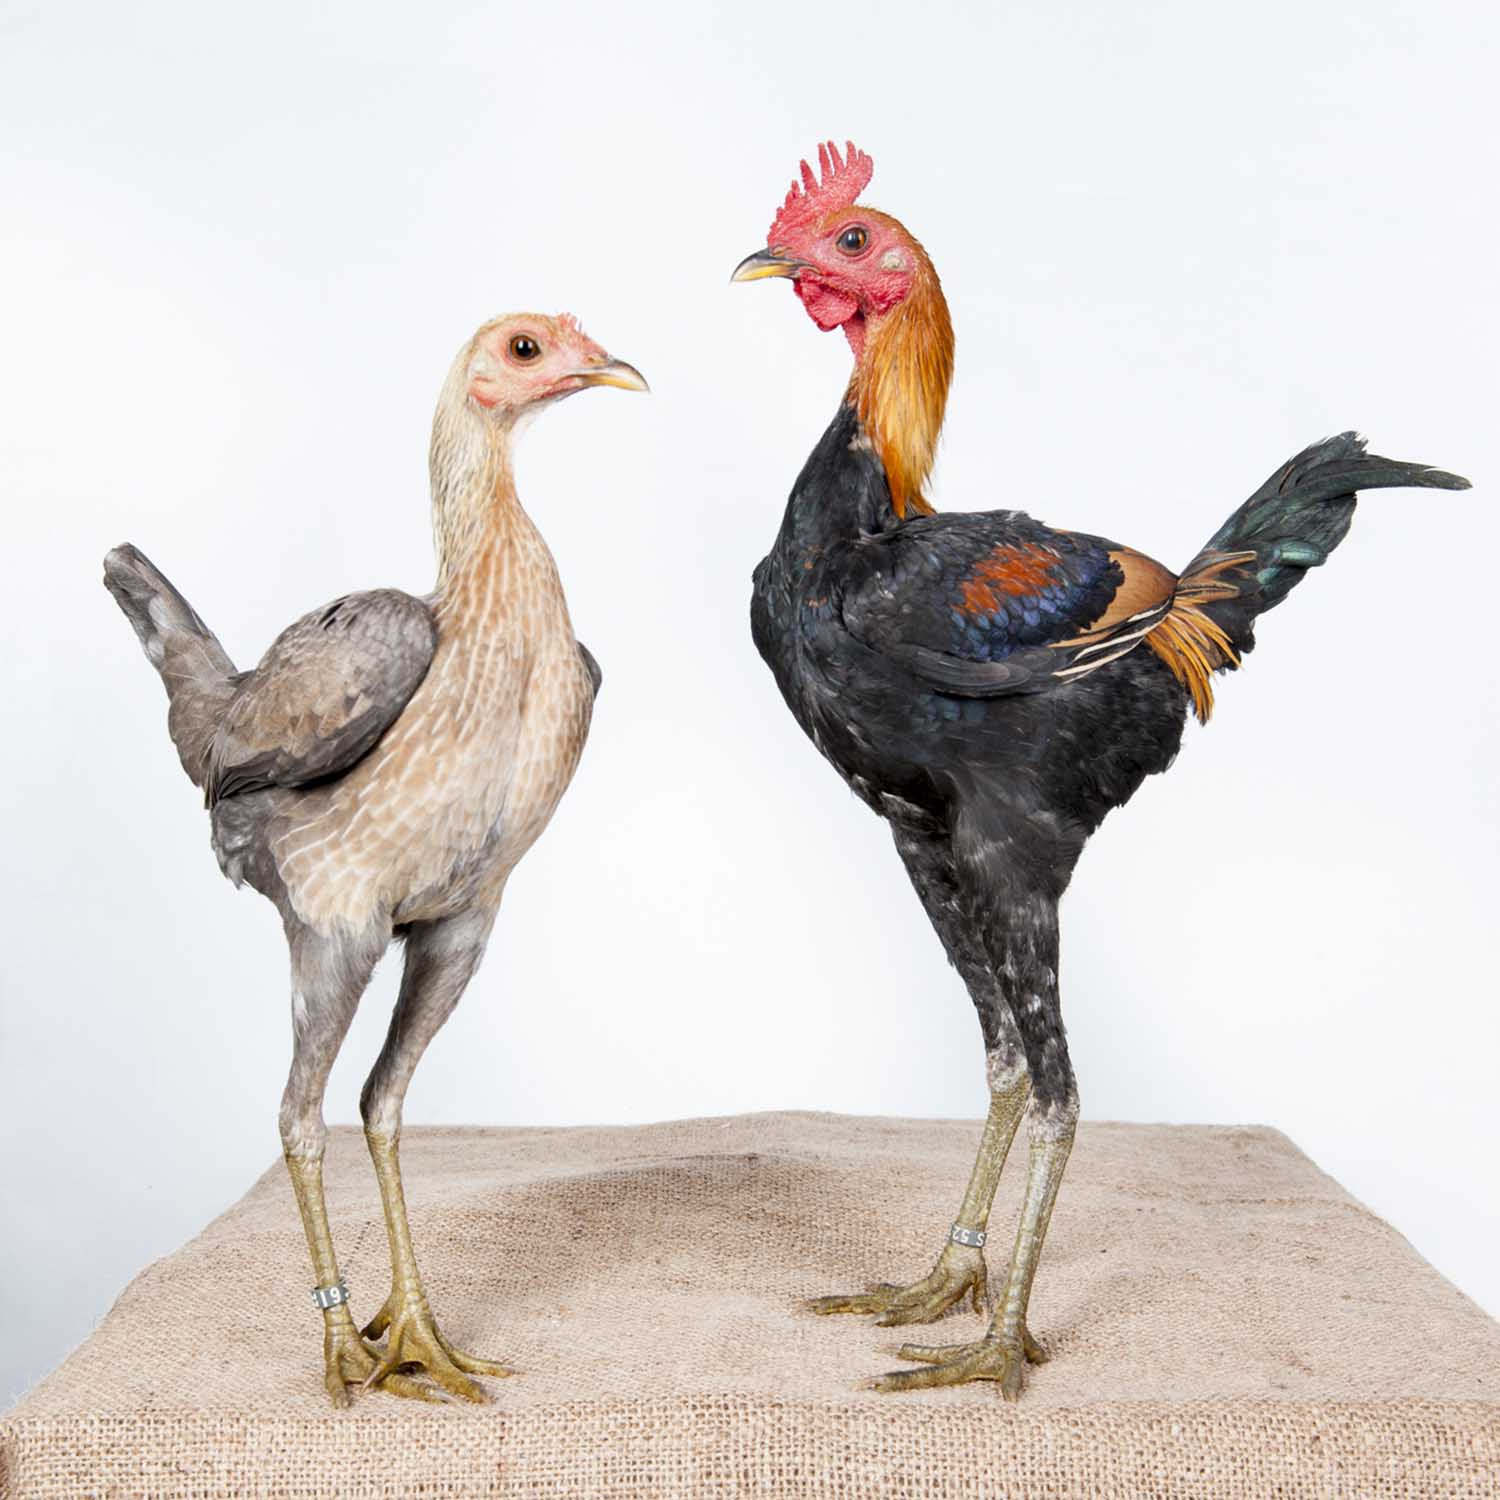 Chickens by Emanuela Colombo, The Fence   World Photography